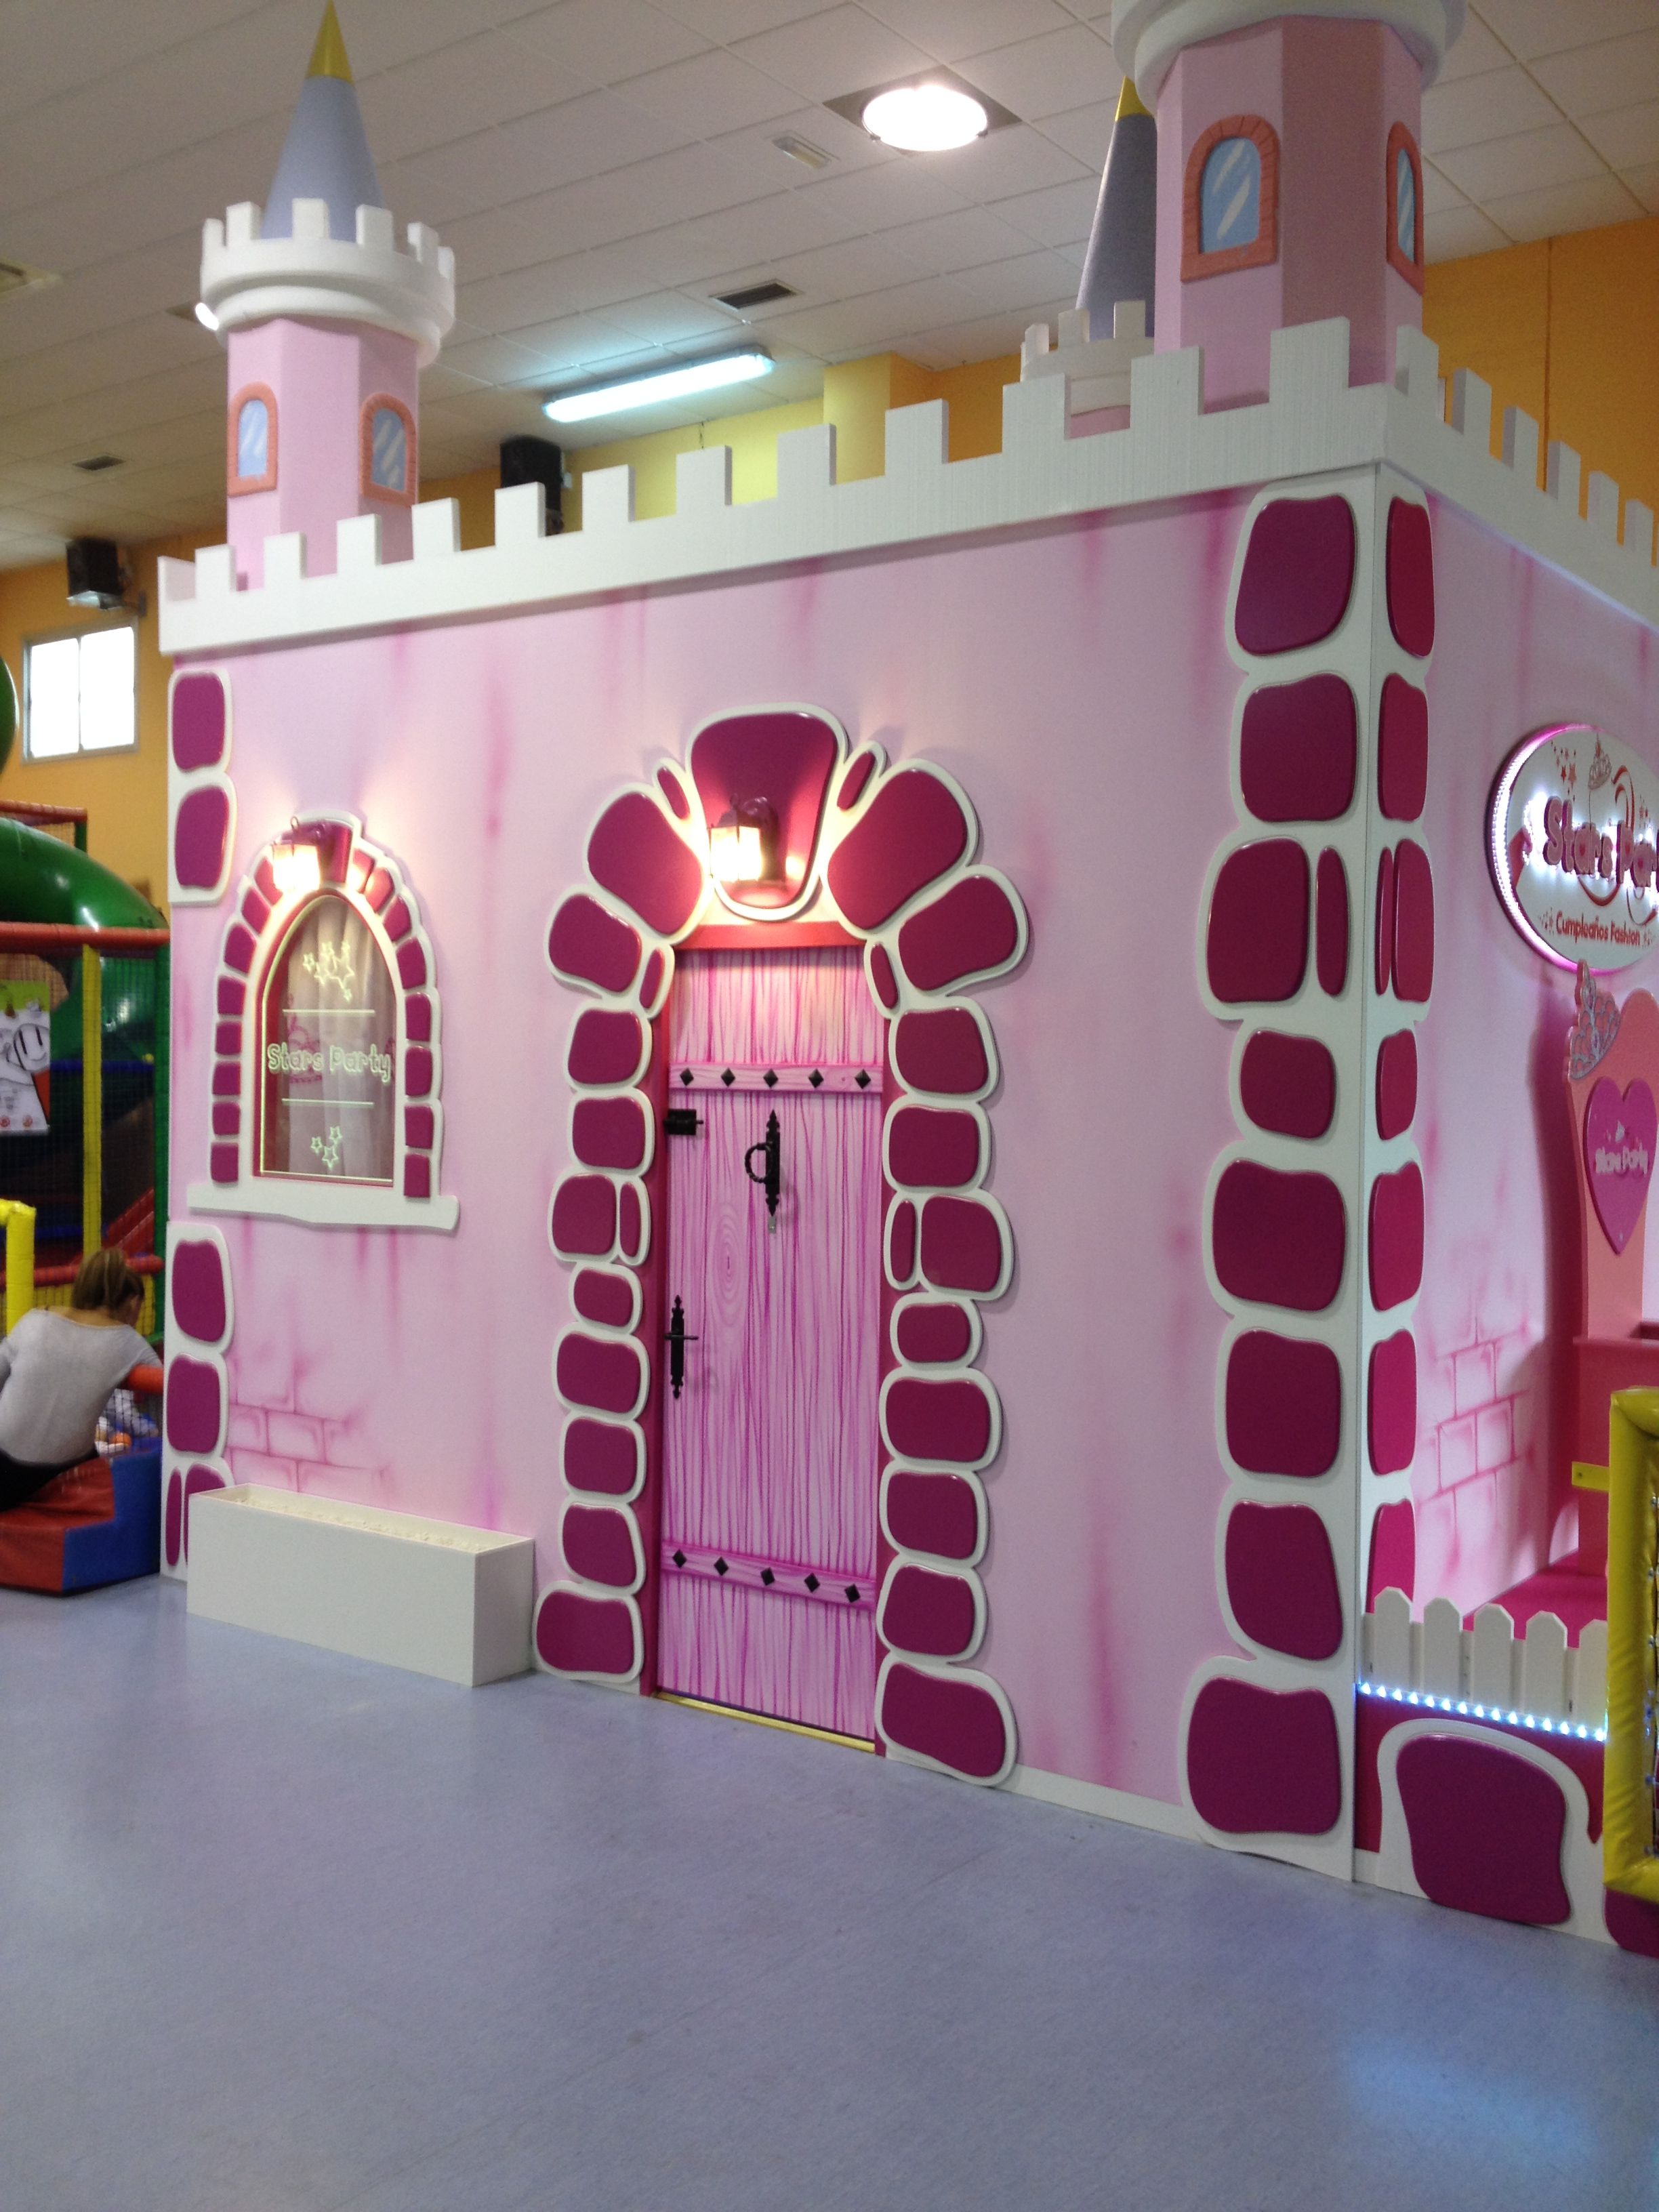 Castillo de princesas para ni as en el parque infantil for Decoracion de parques